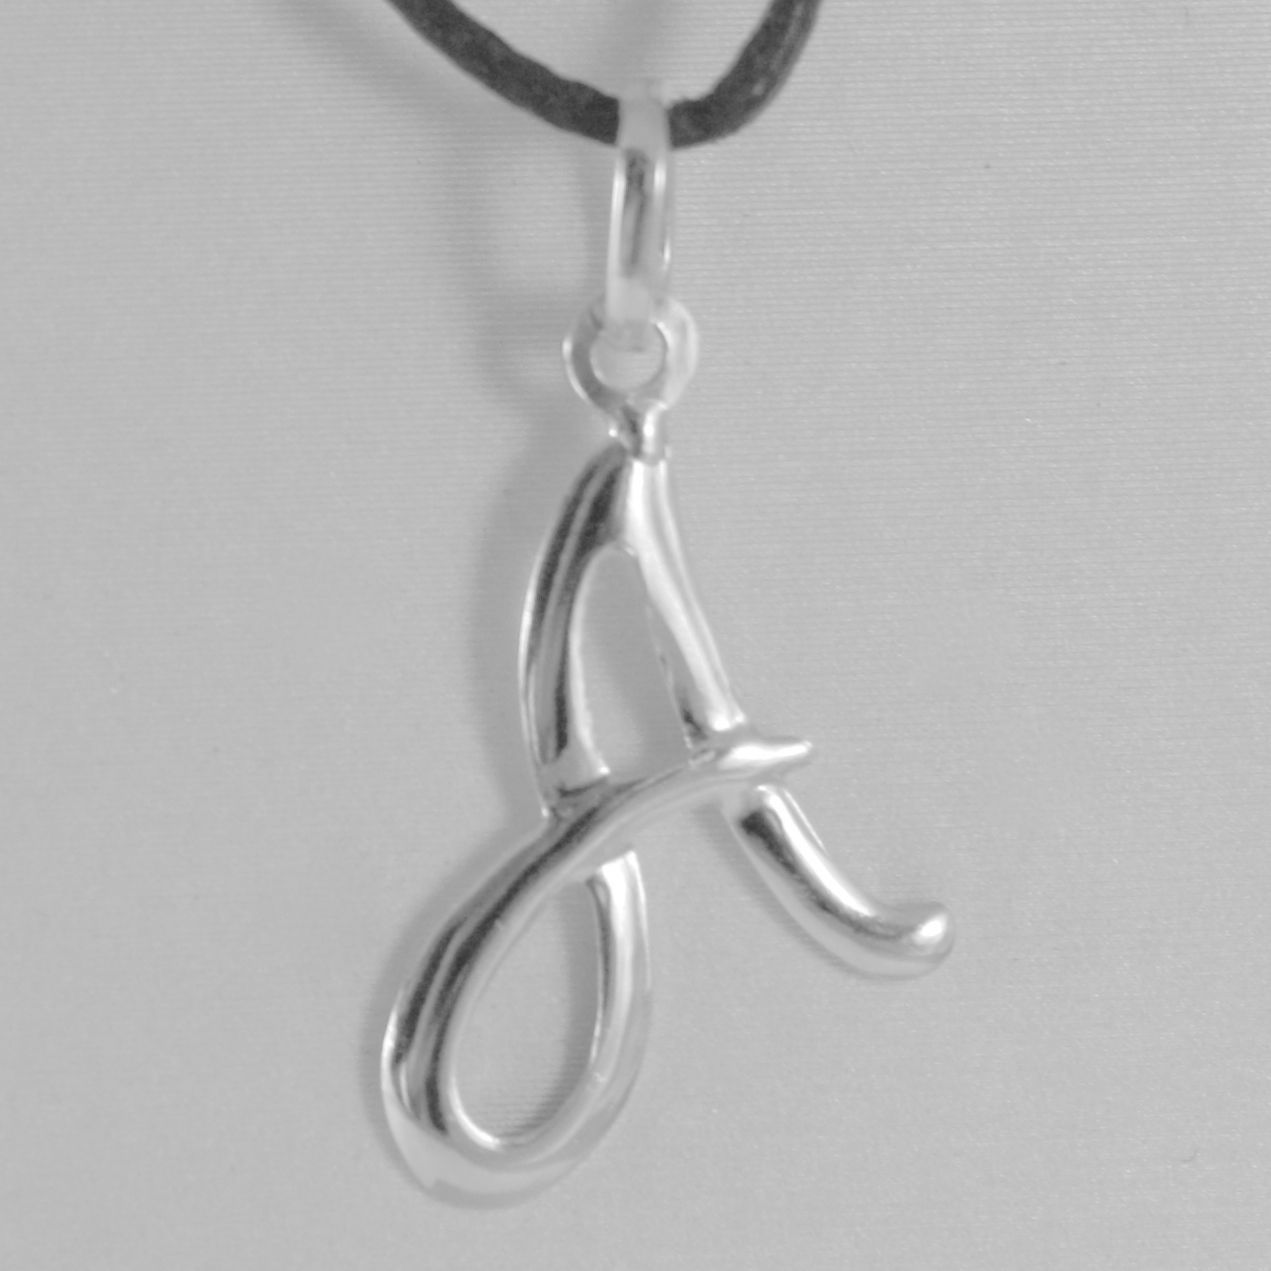 PENDANT SHEET WHITE GOLD 18K WITH LETTER INITIAL AND CORD BLACK WAXED